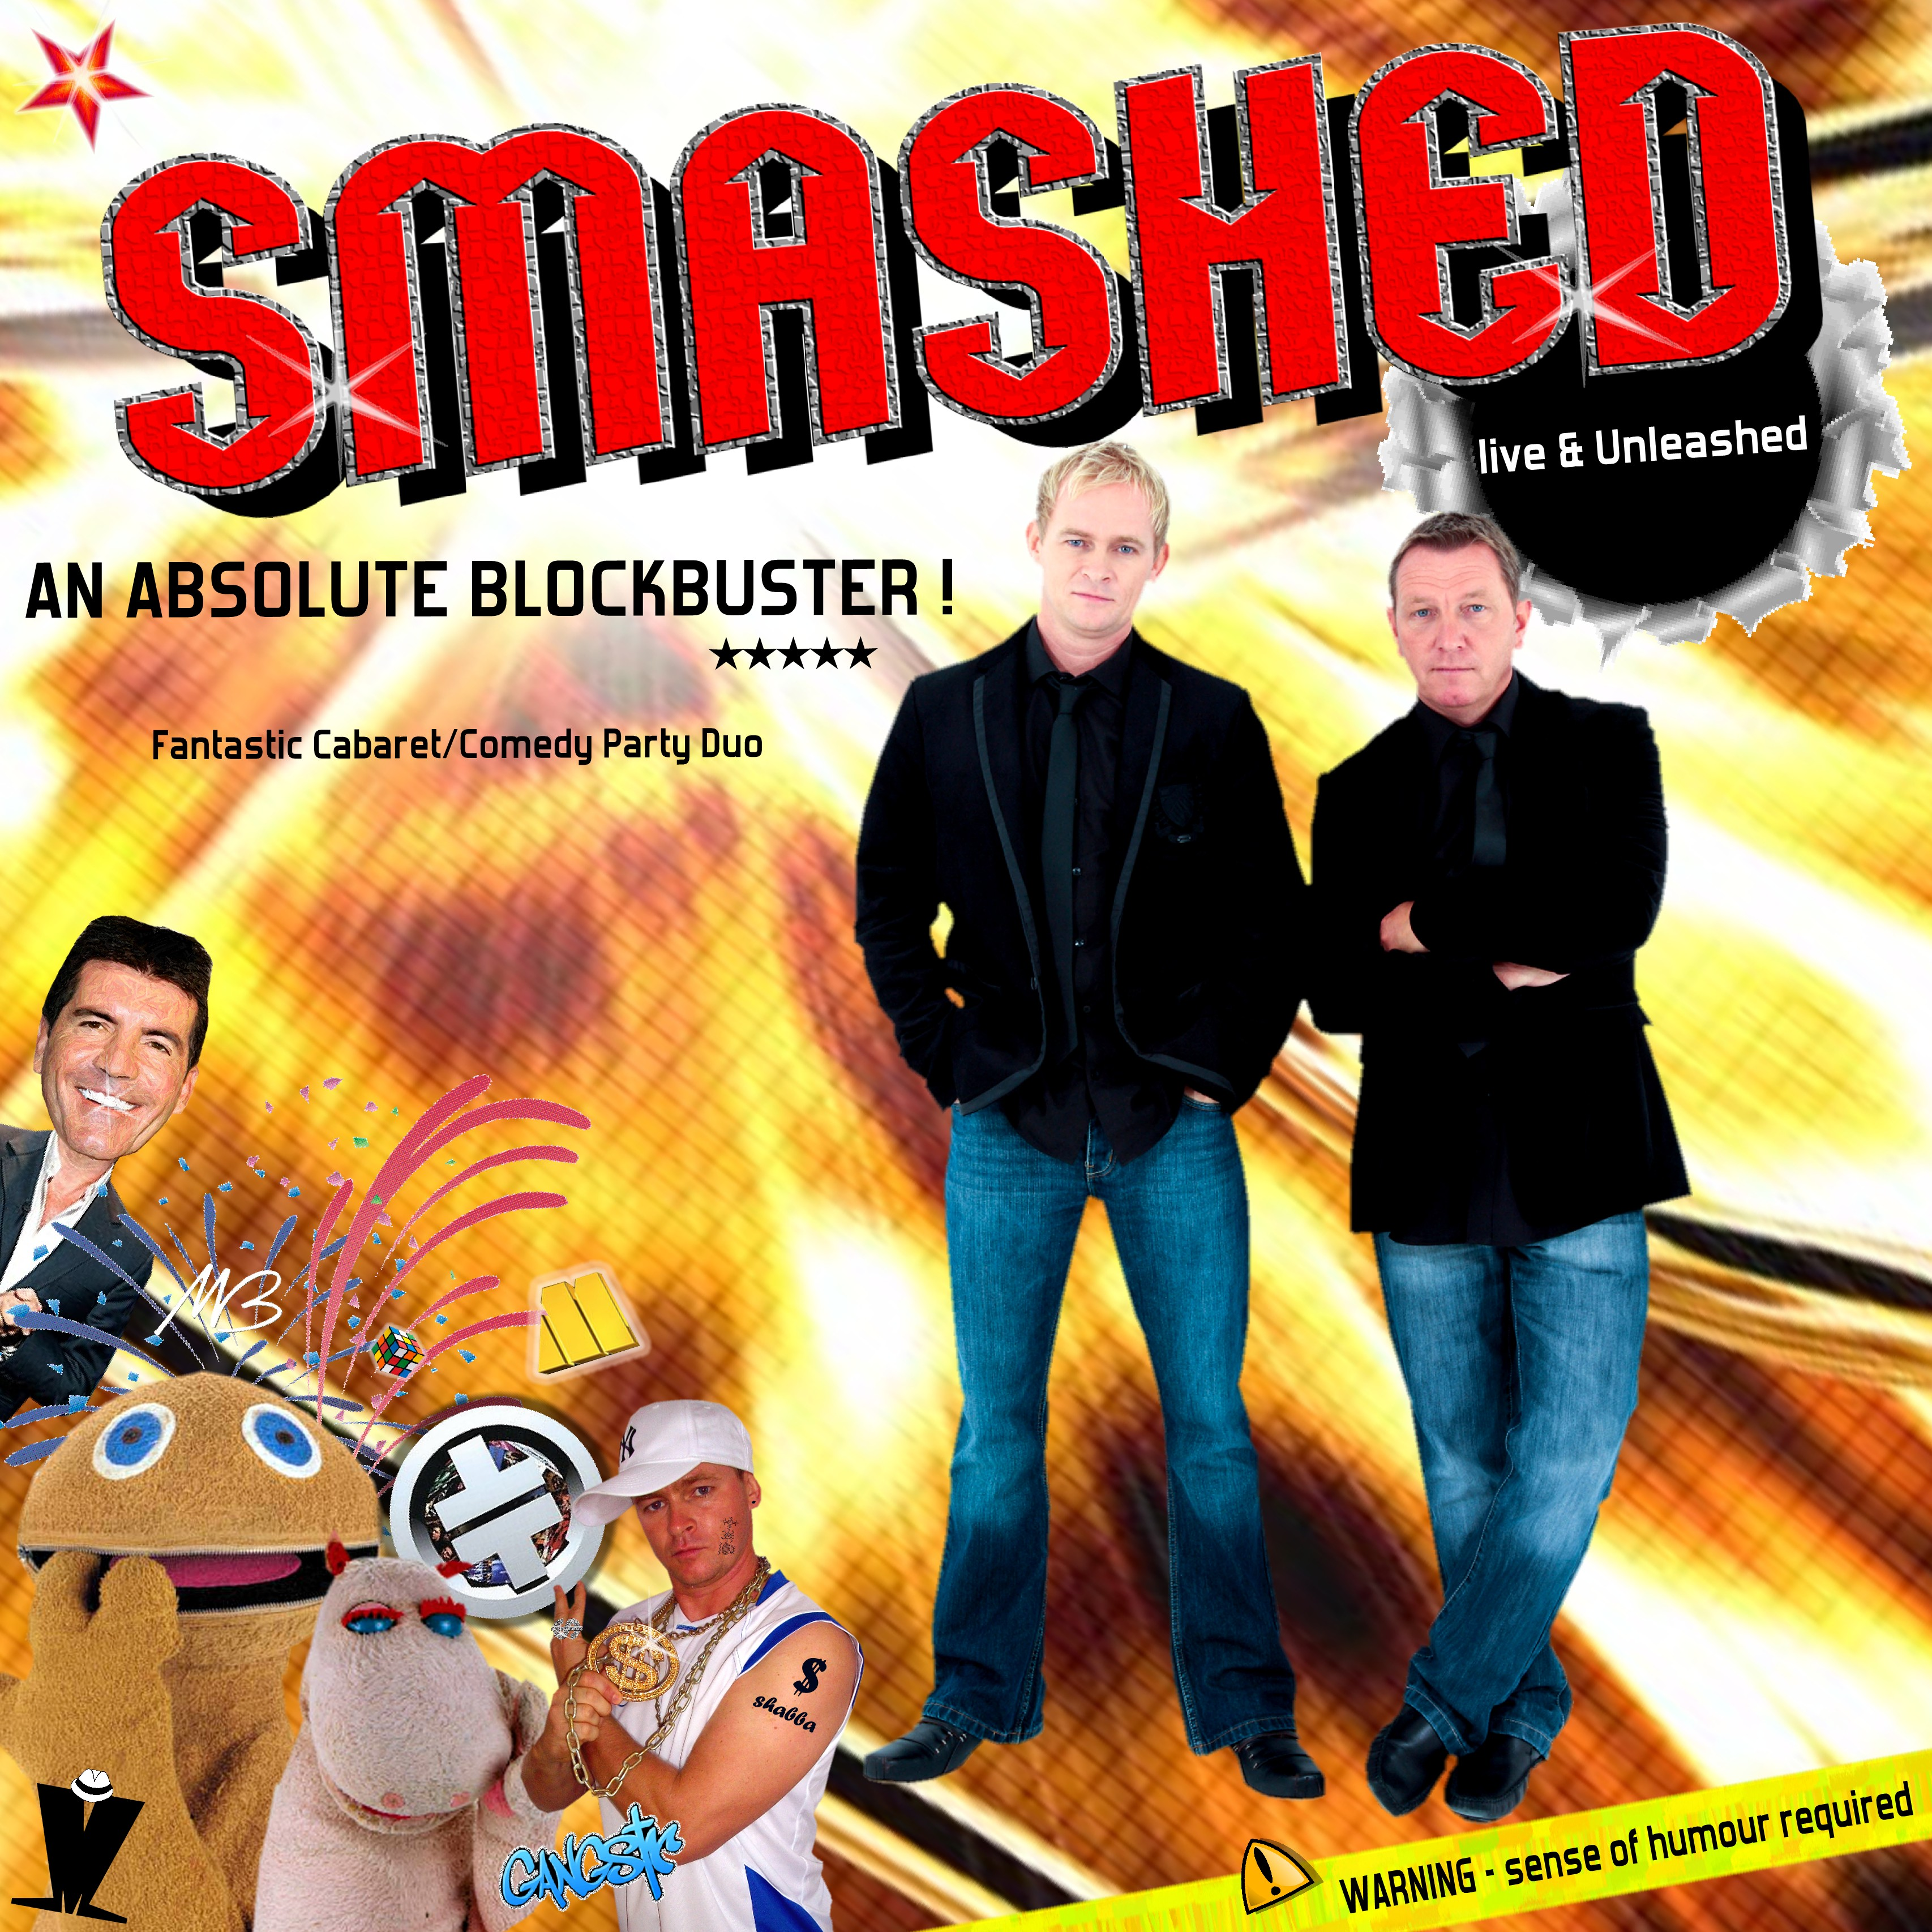 2011 Poster